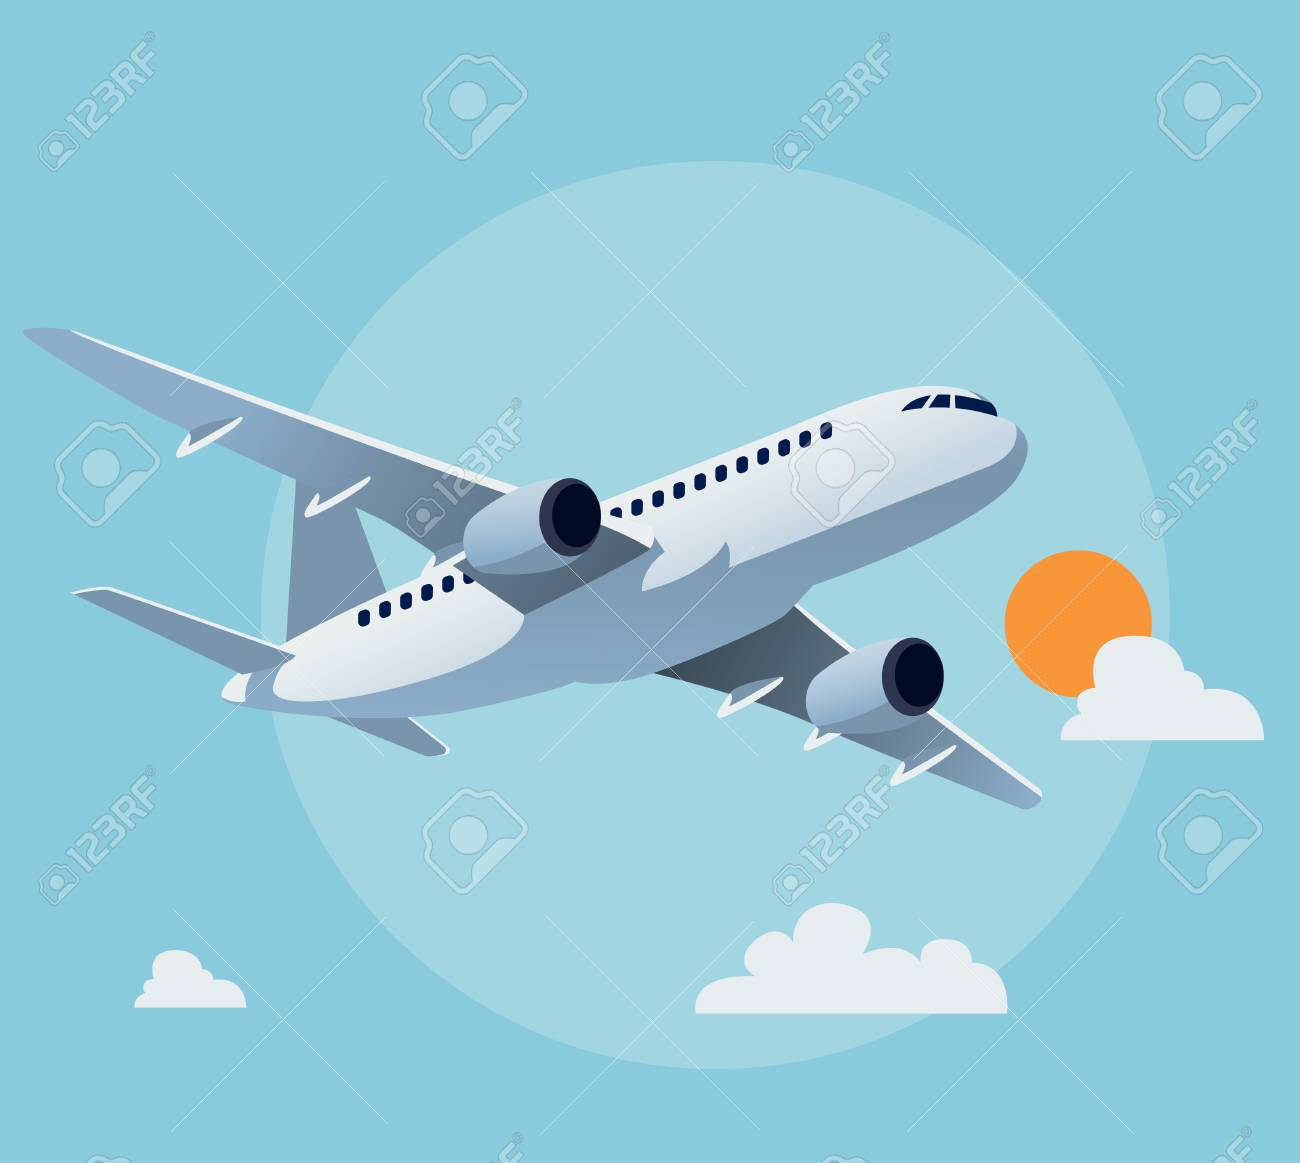 flat airplane illustration, view of a flying aircraft royalty free  cliparts, vectors, and stock illustration. image 59282528.  123rf